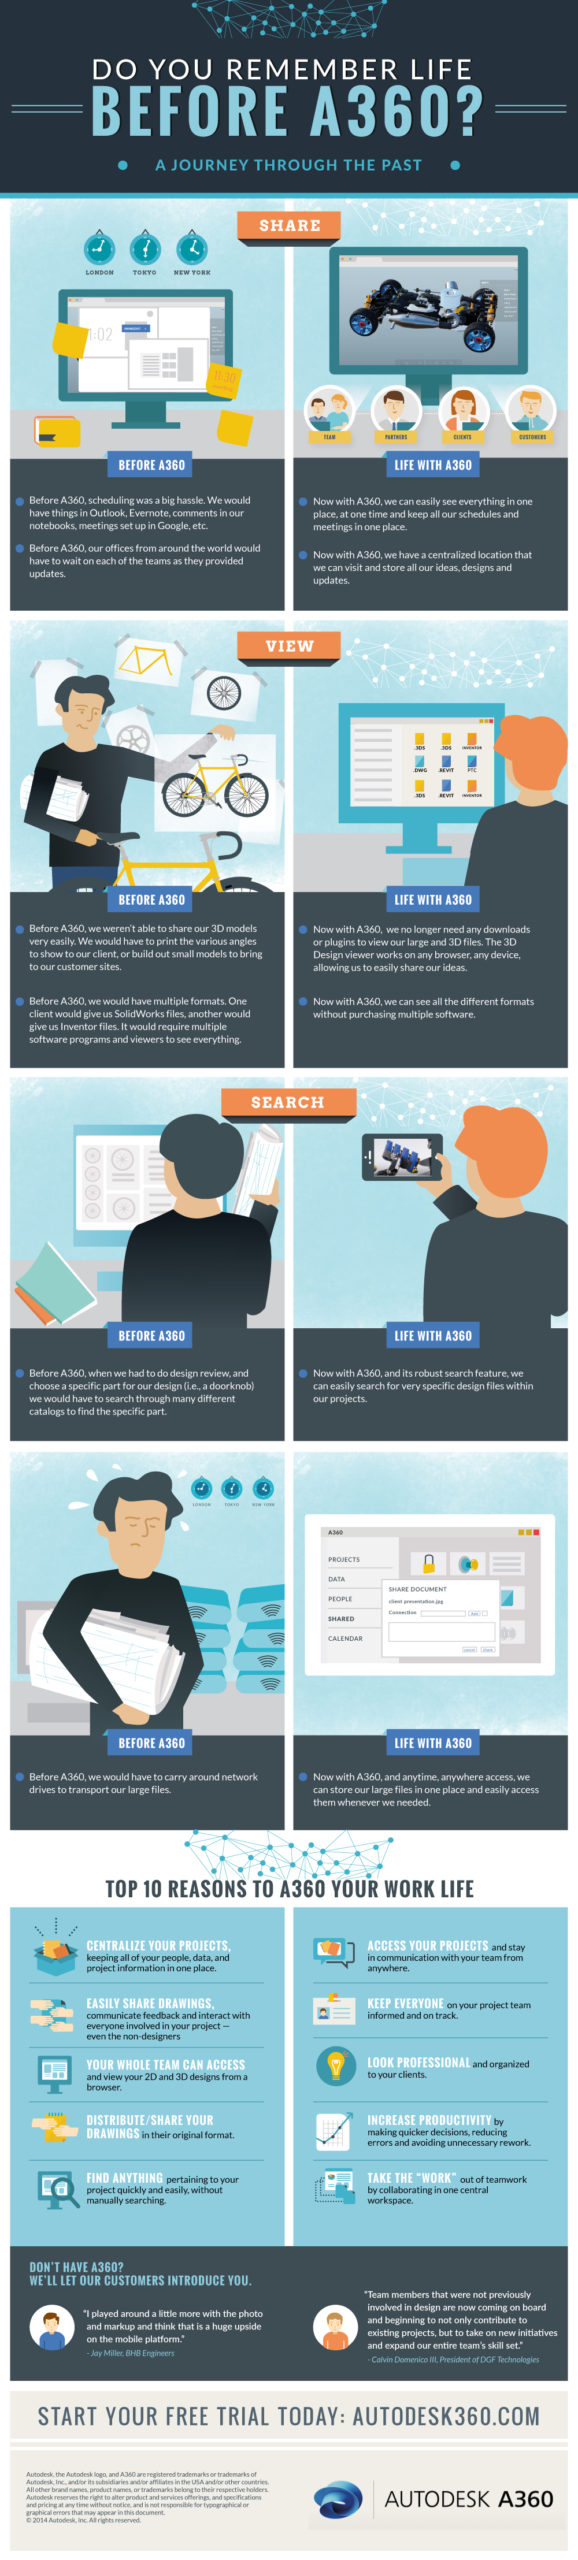 Life Before A360 Infographic